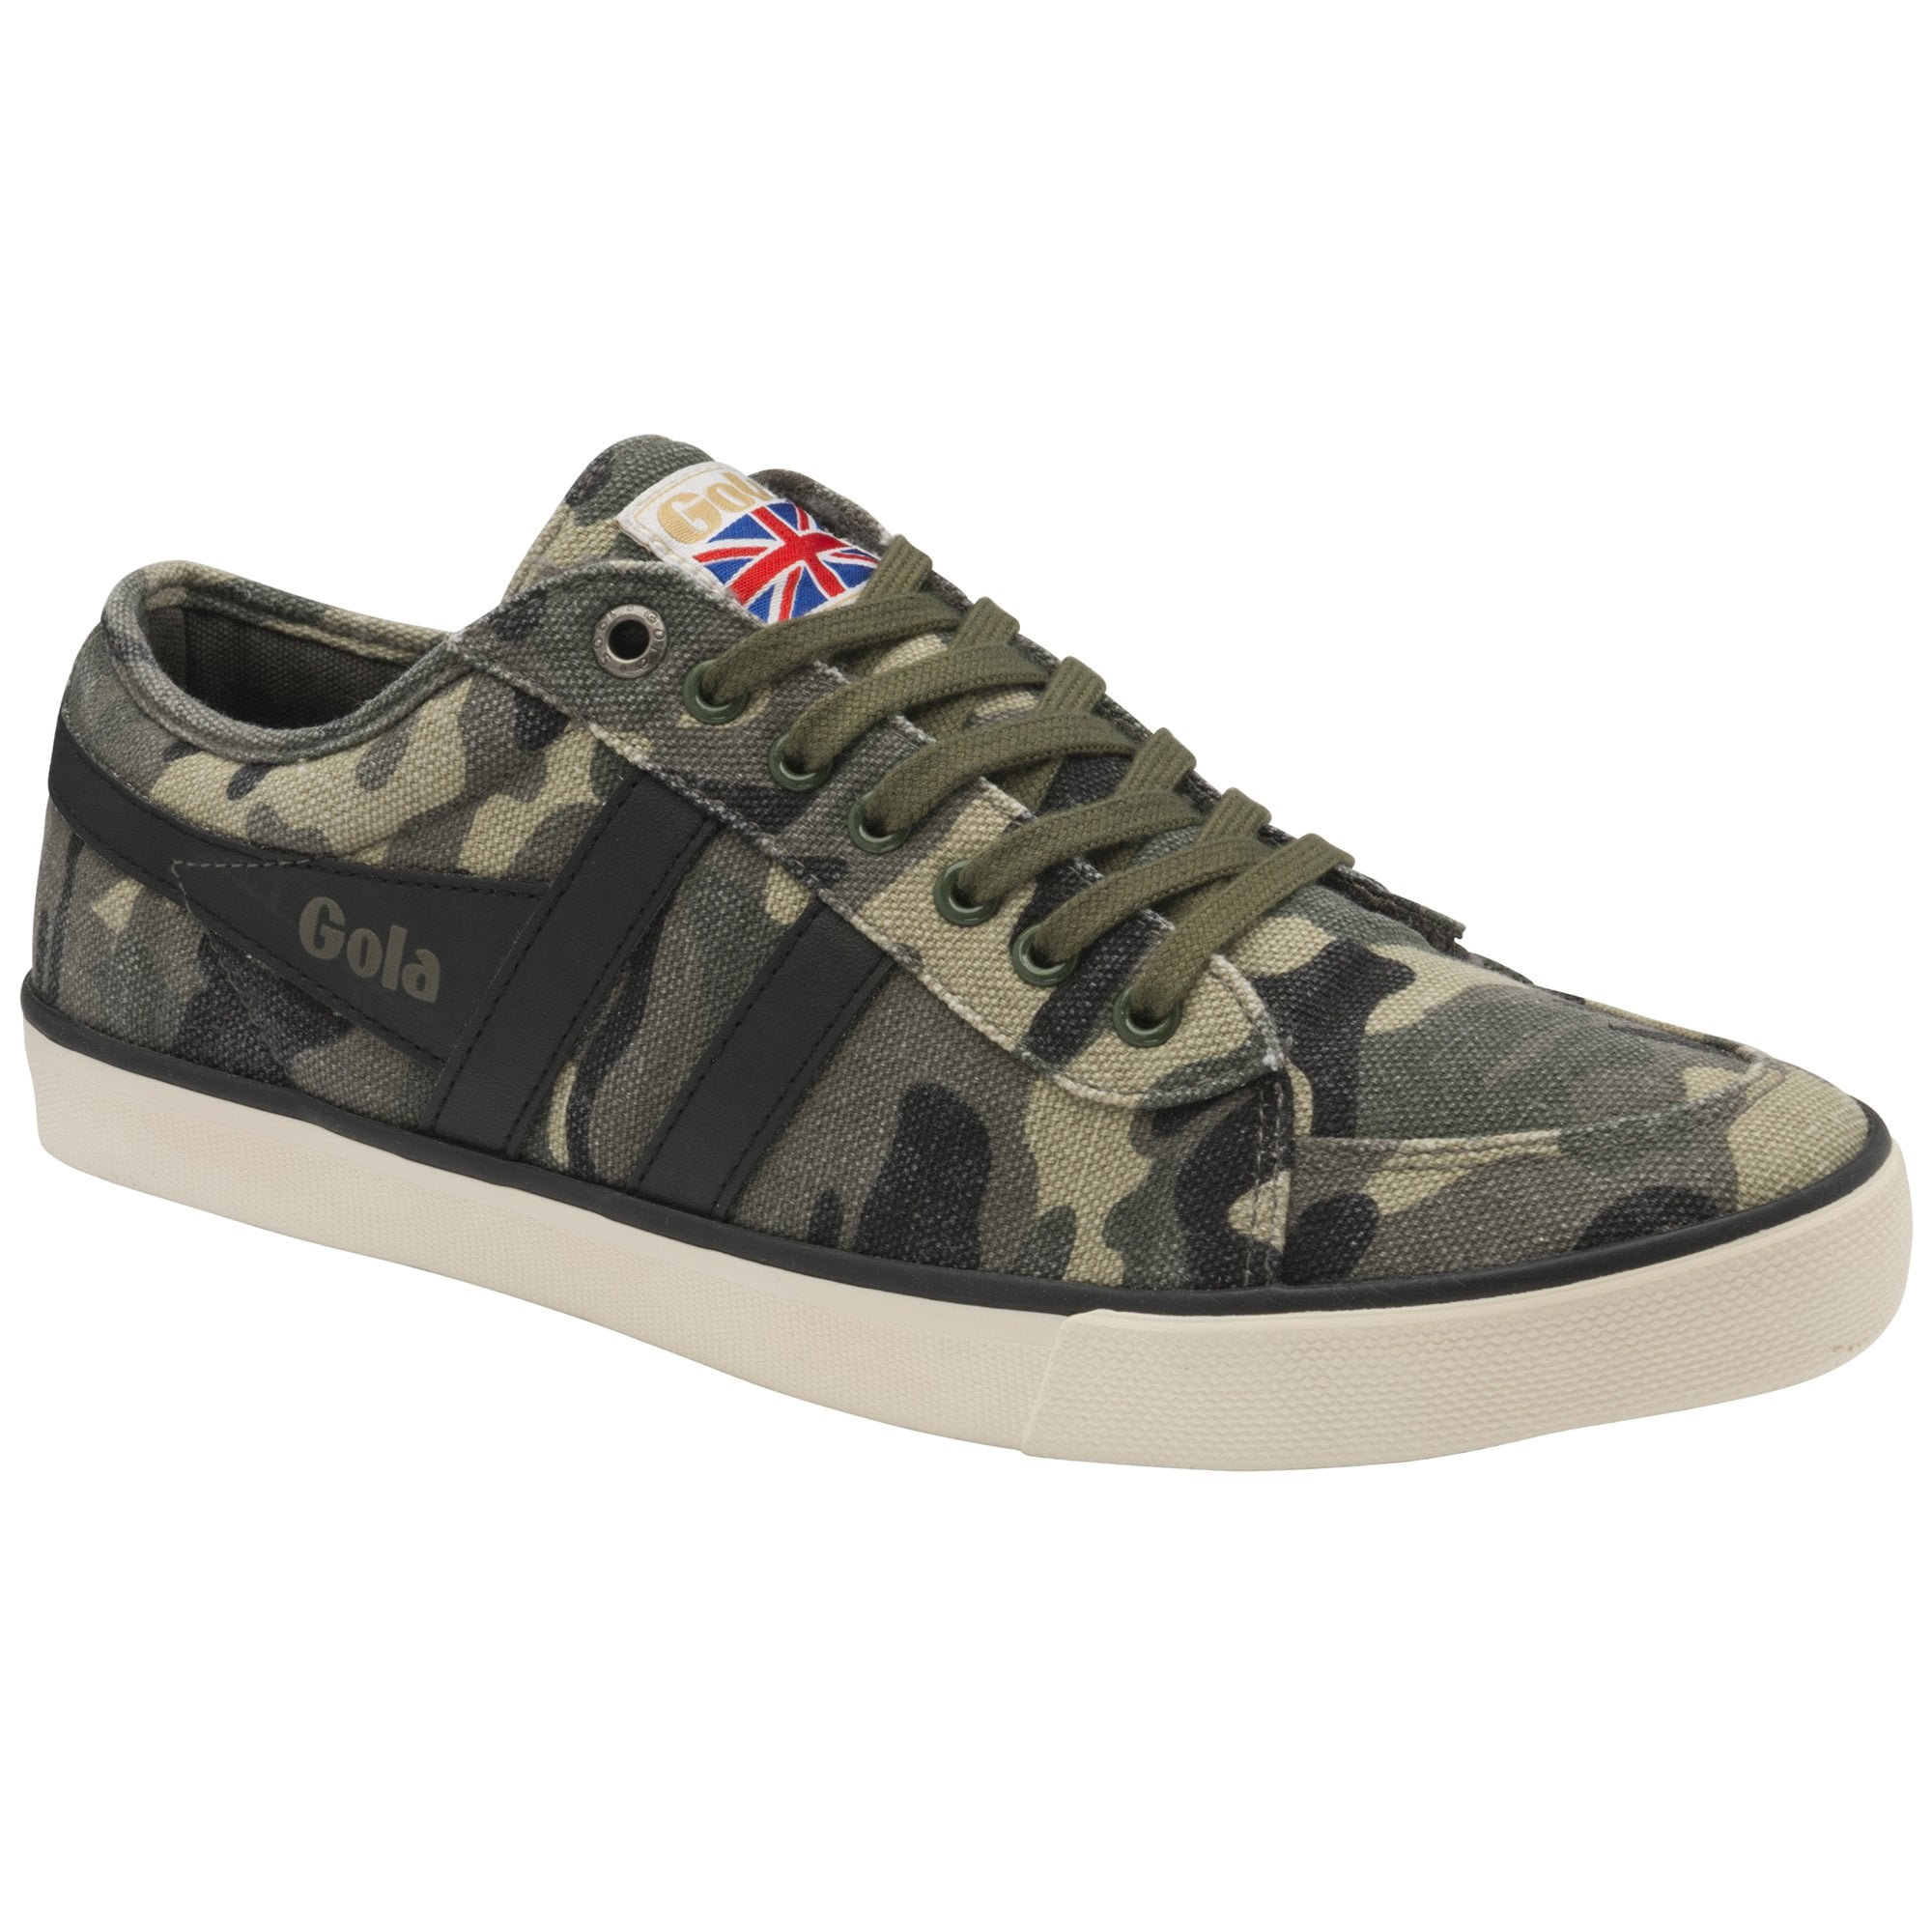 Men's Comet Camo Plimsoll Trainer